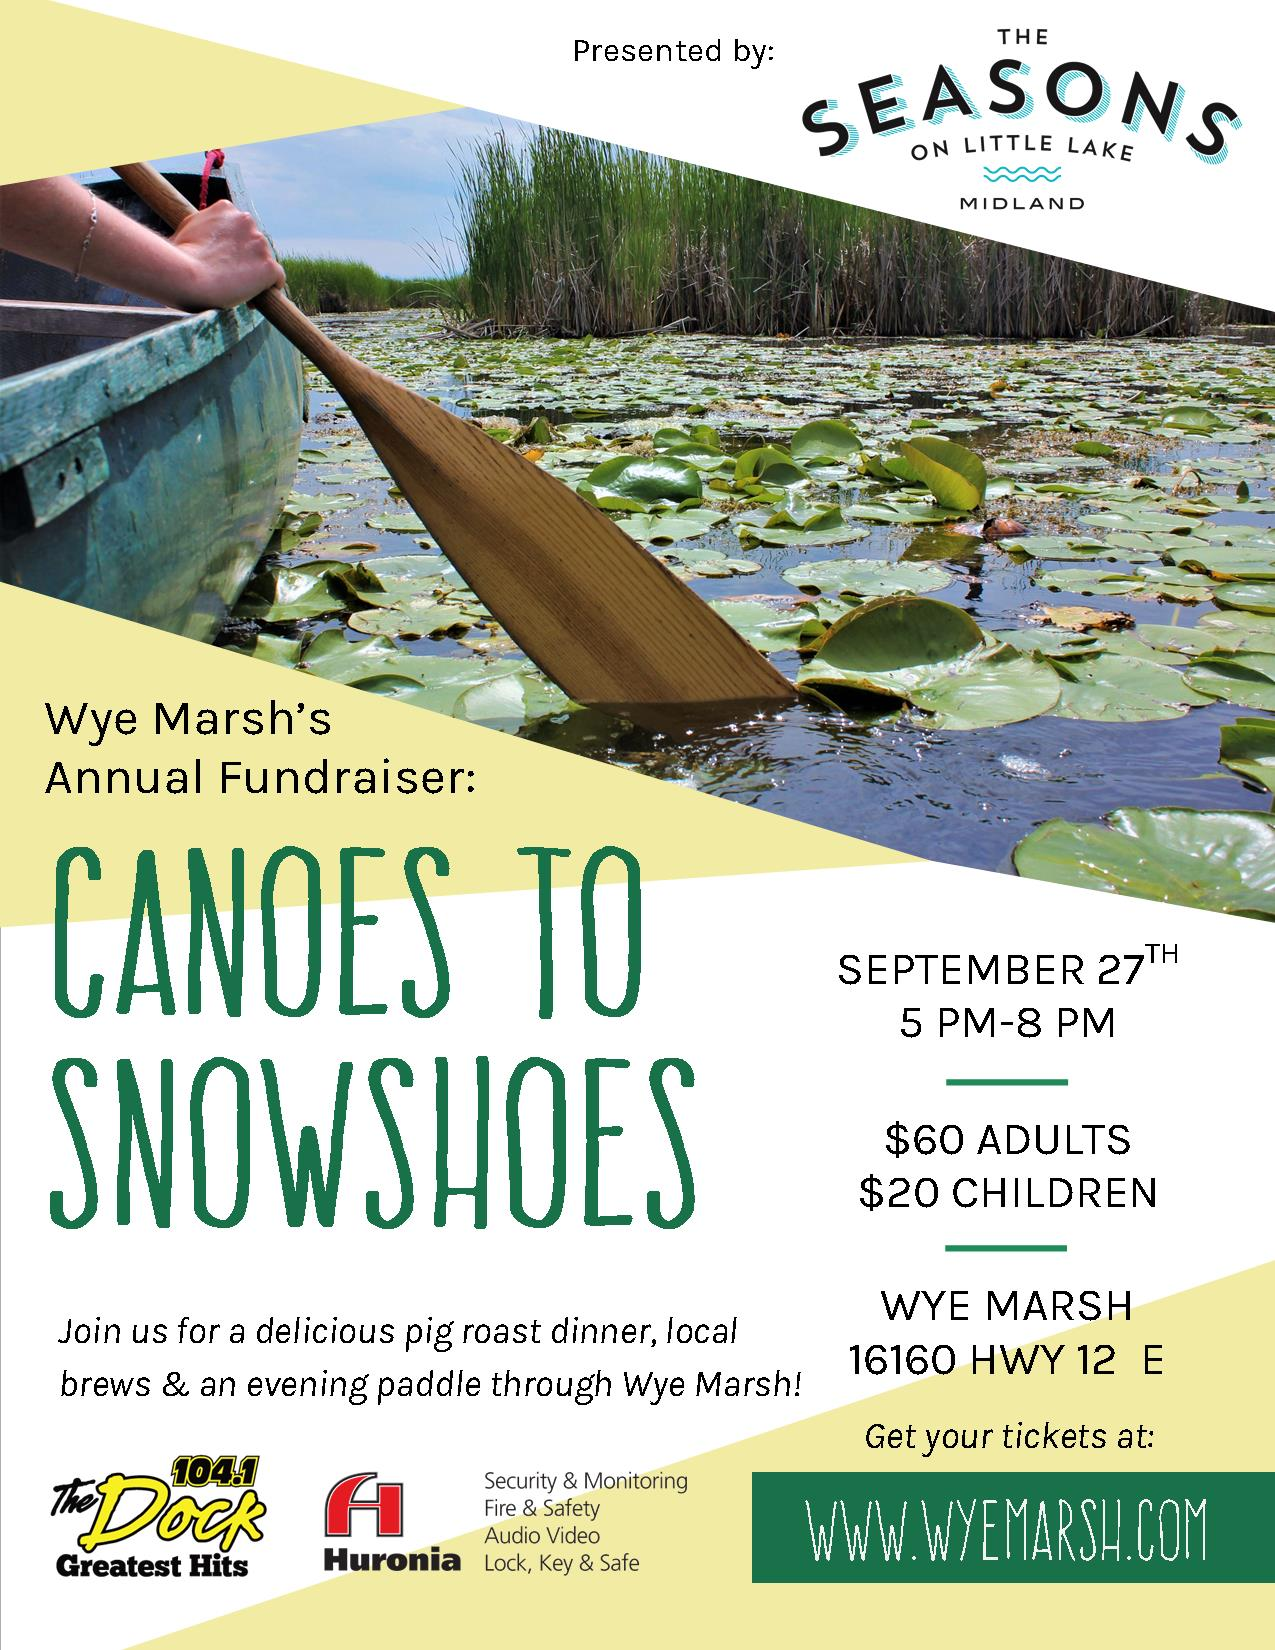 Cts Poster - WYE MARSH ANNUAL FUNDRAISER: CANOES TO SNOWSHOES